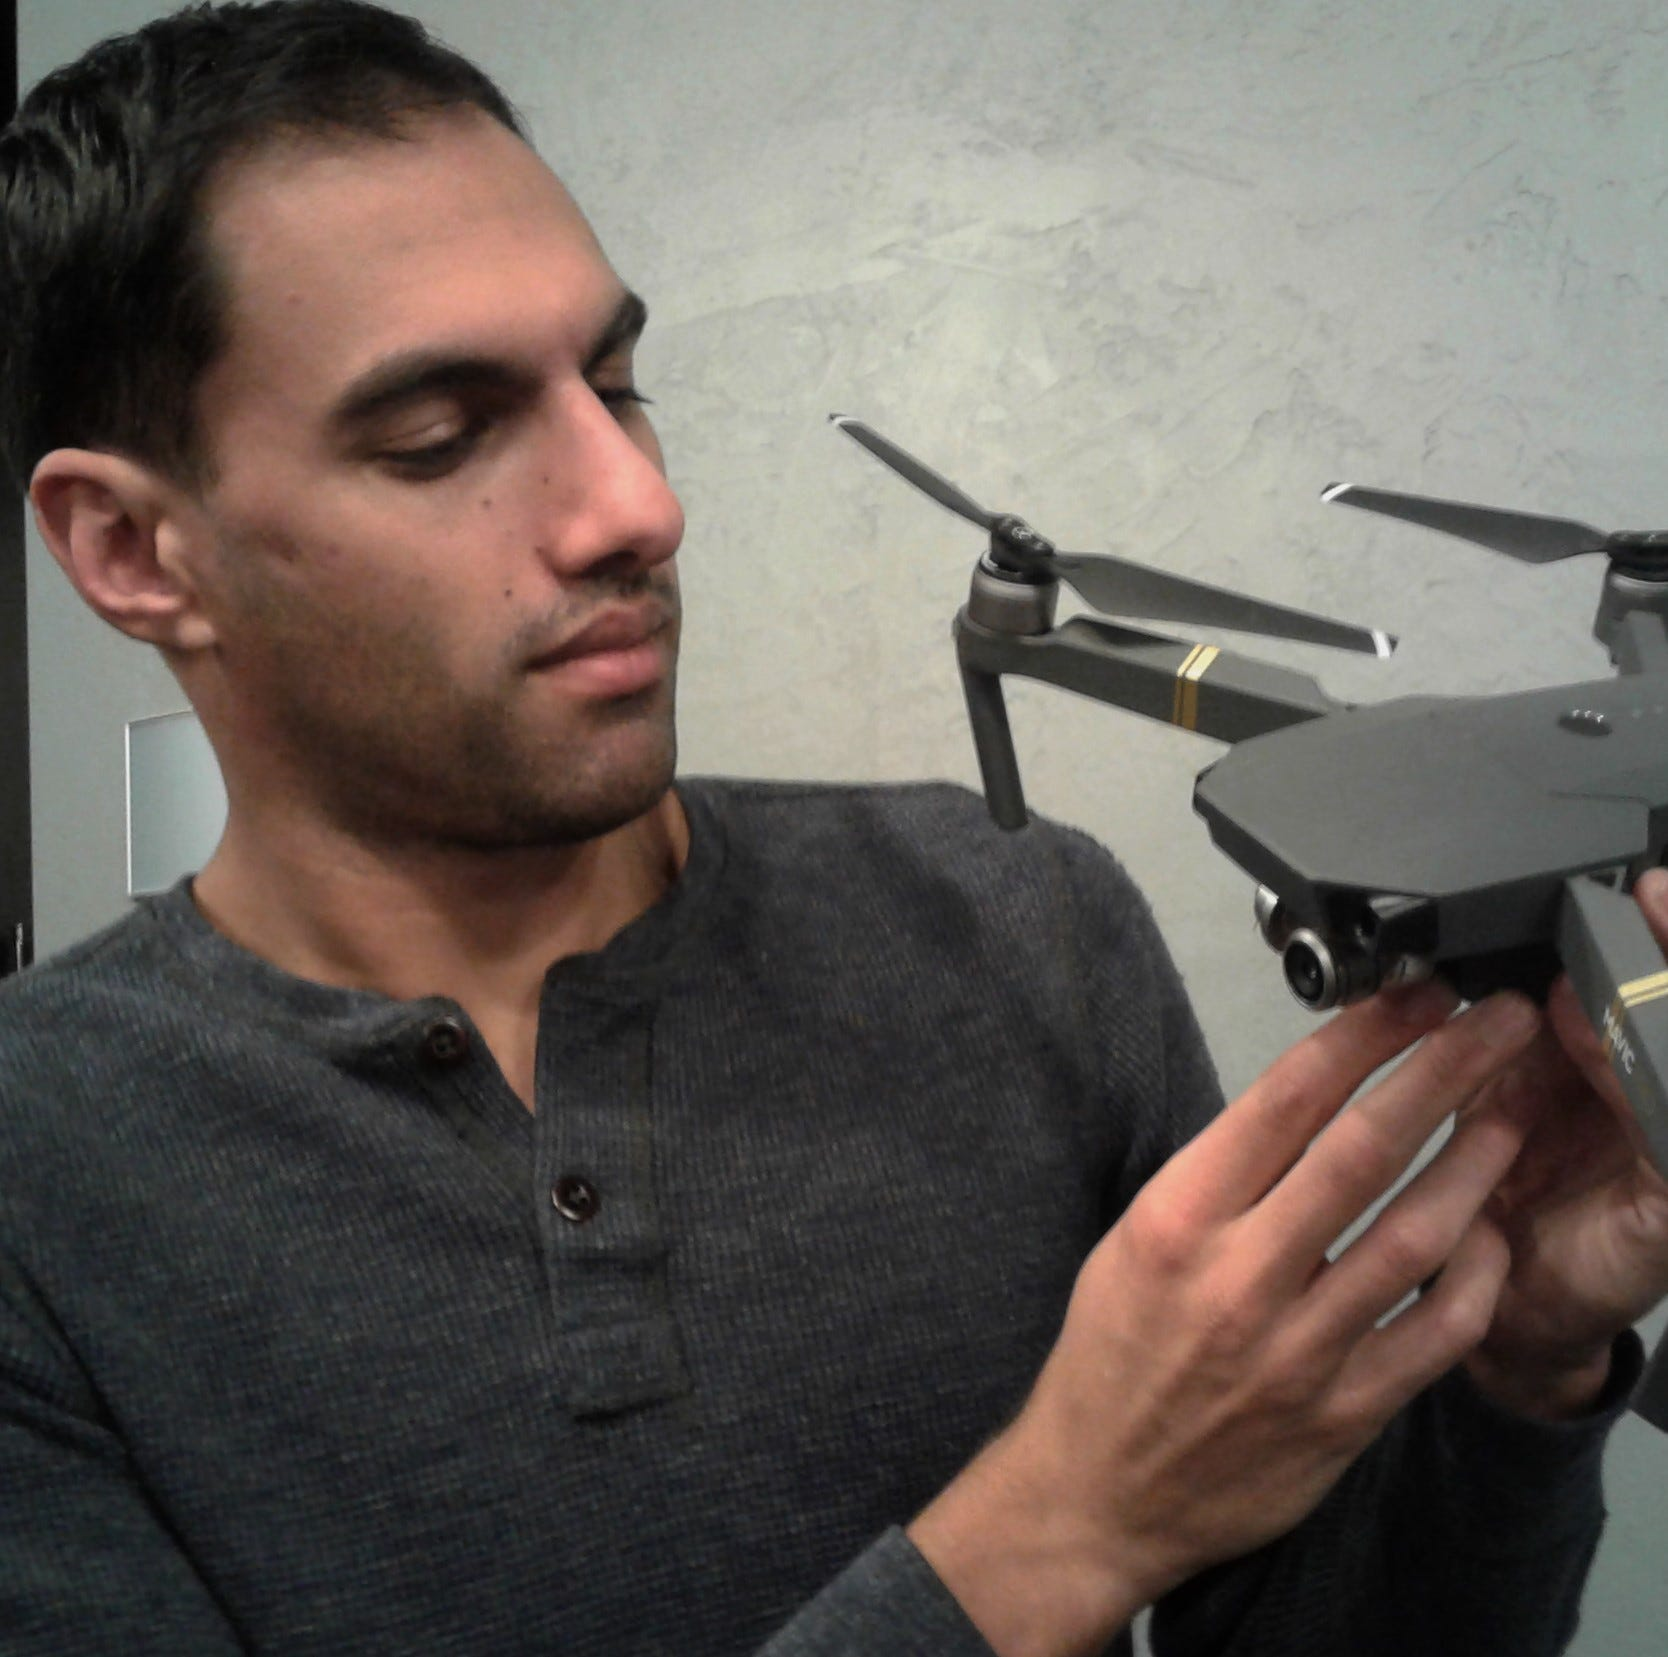 Drones play key role in North Liberty entrepreneur's new enterprise